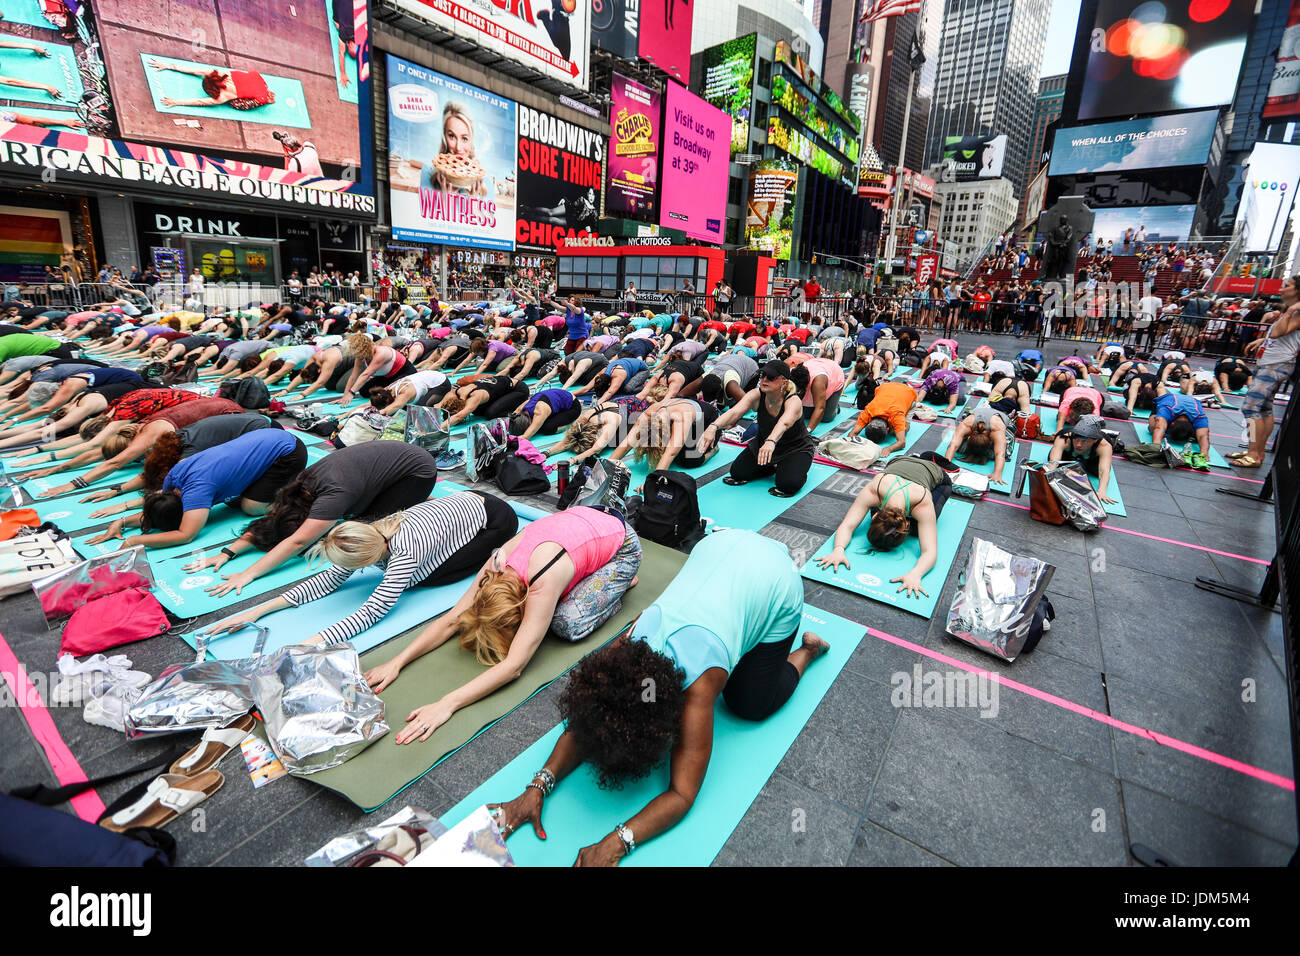 New York, United States. 21st June, 2017. People participate in a group yoga class in Times Square, June 21, 2017, - Stock Image